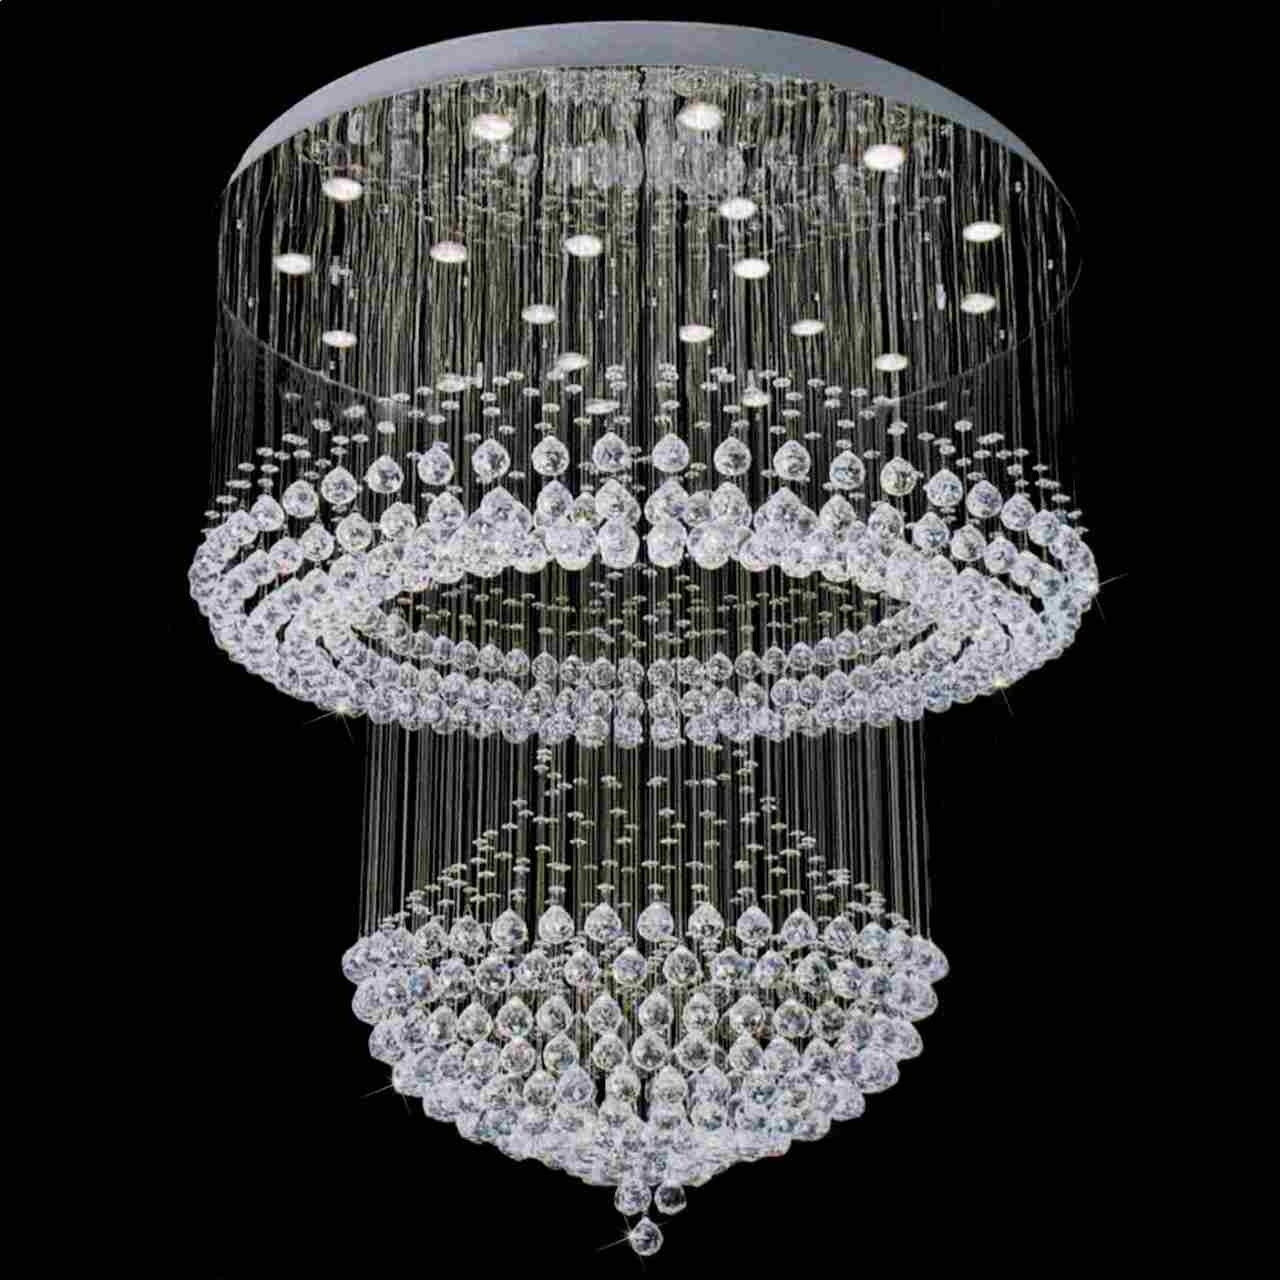 Vienna Crystal Chandeliers Regarding Widely Used Home Design : Mesmerizing Modern Crystal Chandeliers Innovative (View 19 of 20)